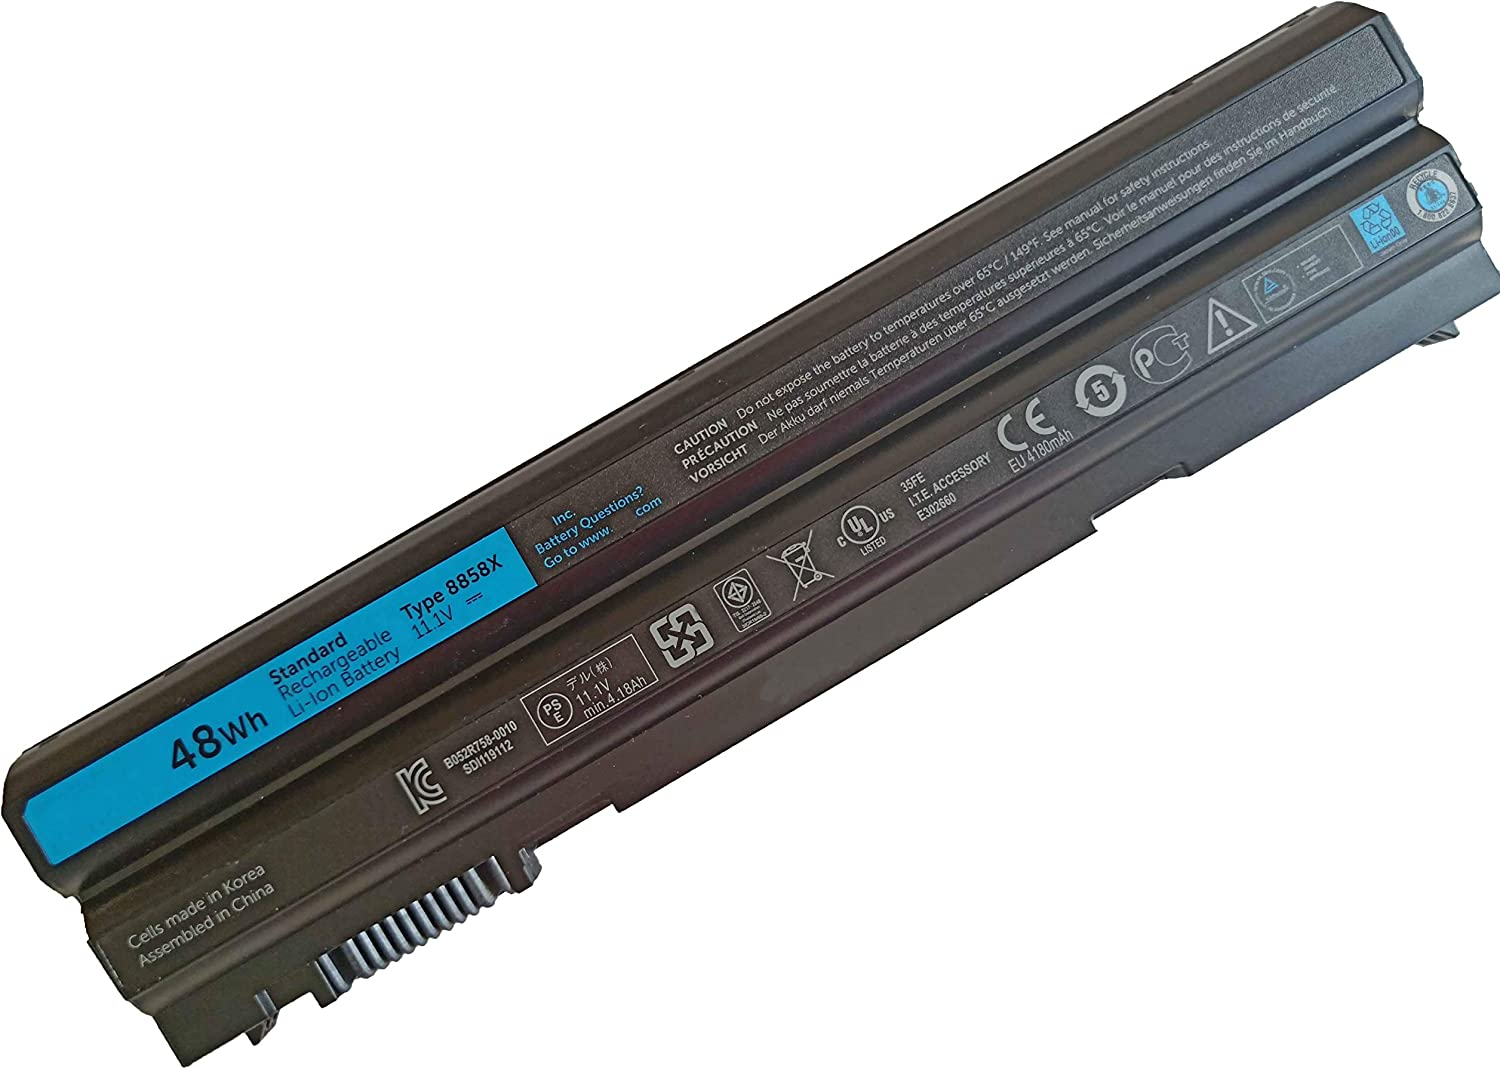 Dentsing 11.1V 48Wh/4400mAh 6-Cells 8858X Laptop Battery Compatible with Dell Latitude E5420 E5430 E5530 E6420 E6430 Inspiron 4420 5420 7420 7520 14R 15R 17R Series Notebook T54FJ M5Y0X N3X1D 911MD